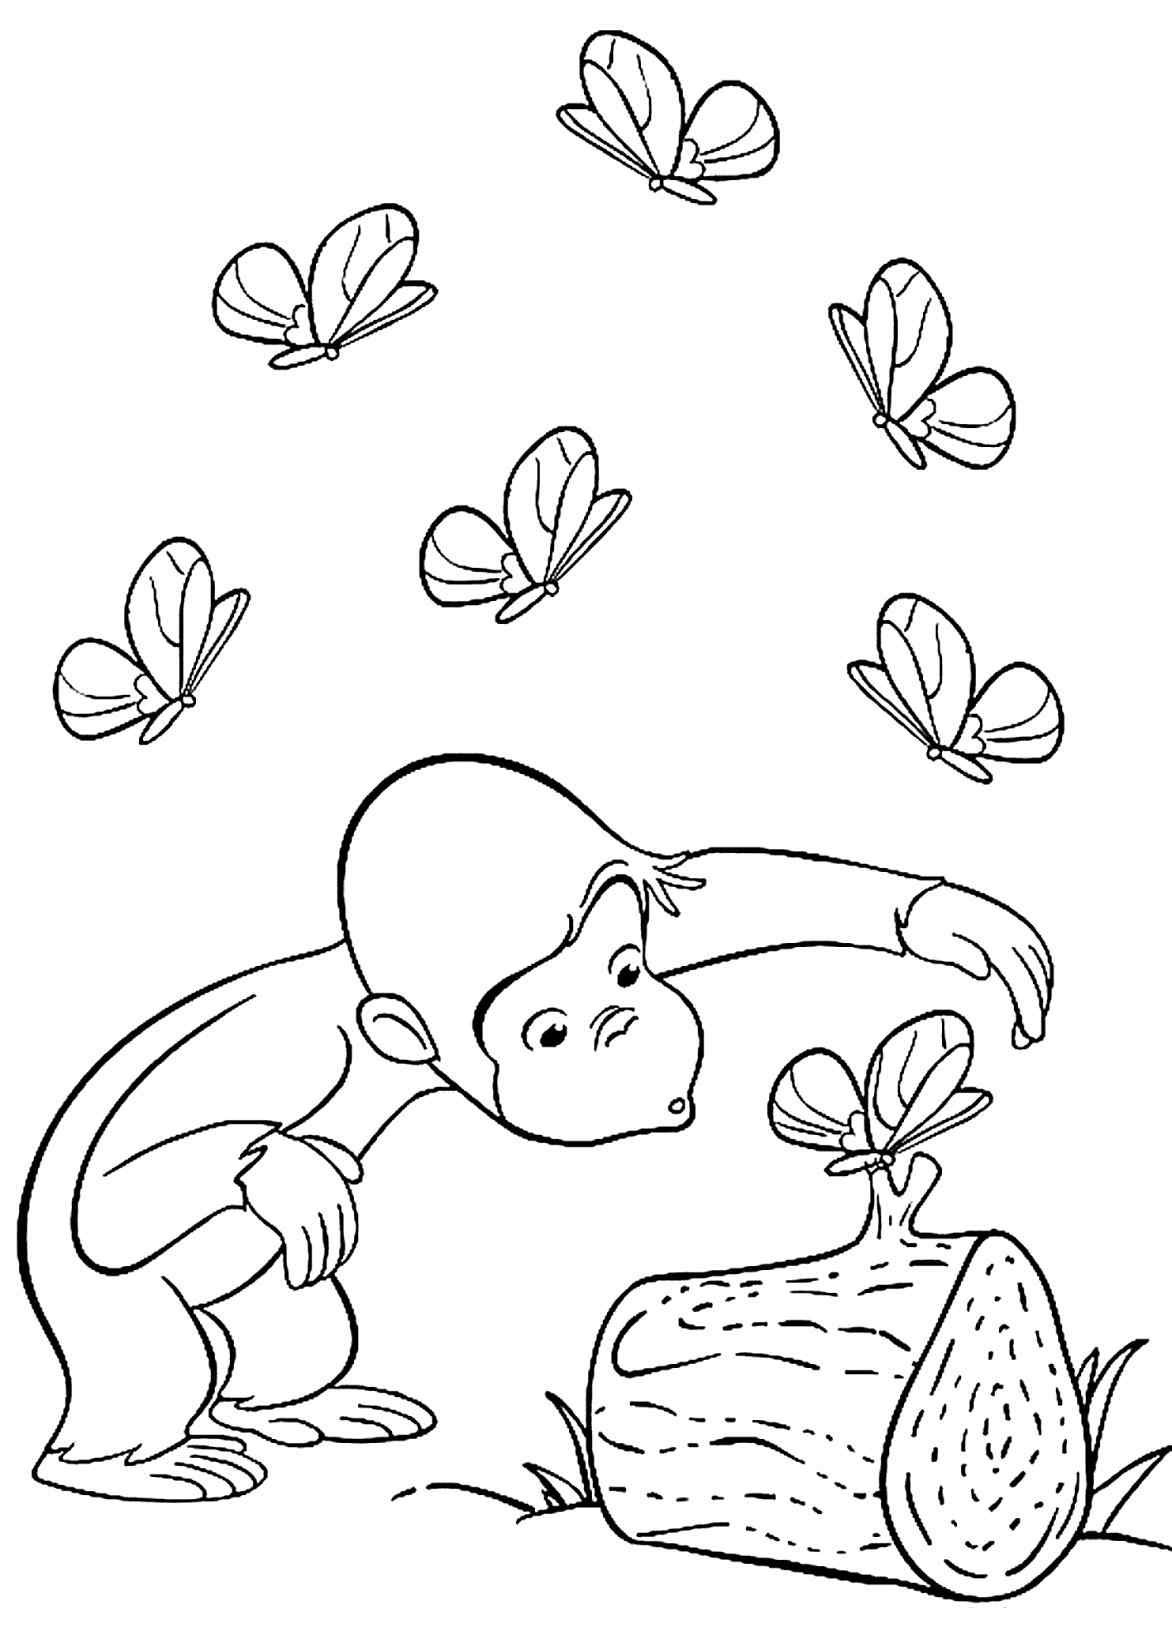 1172x1642 Curious George With Ted Coloring Pages For Kids Lovely Curious